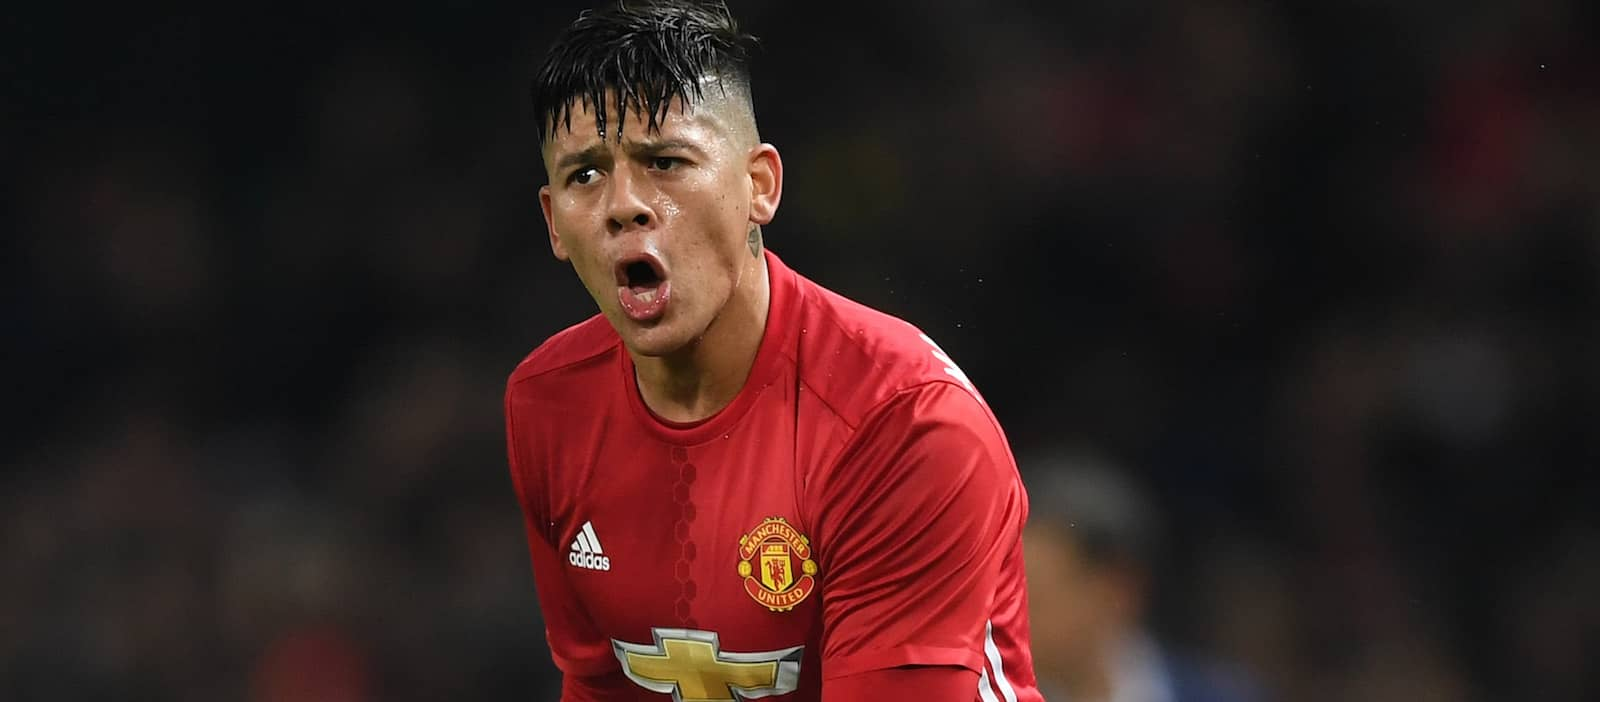 Manchester United are confident Marcos Rojo will be back in action soon